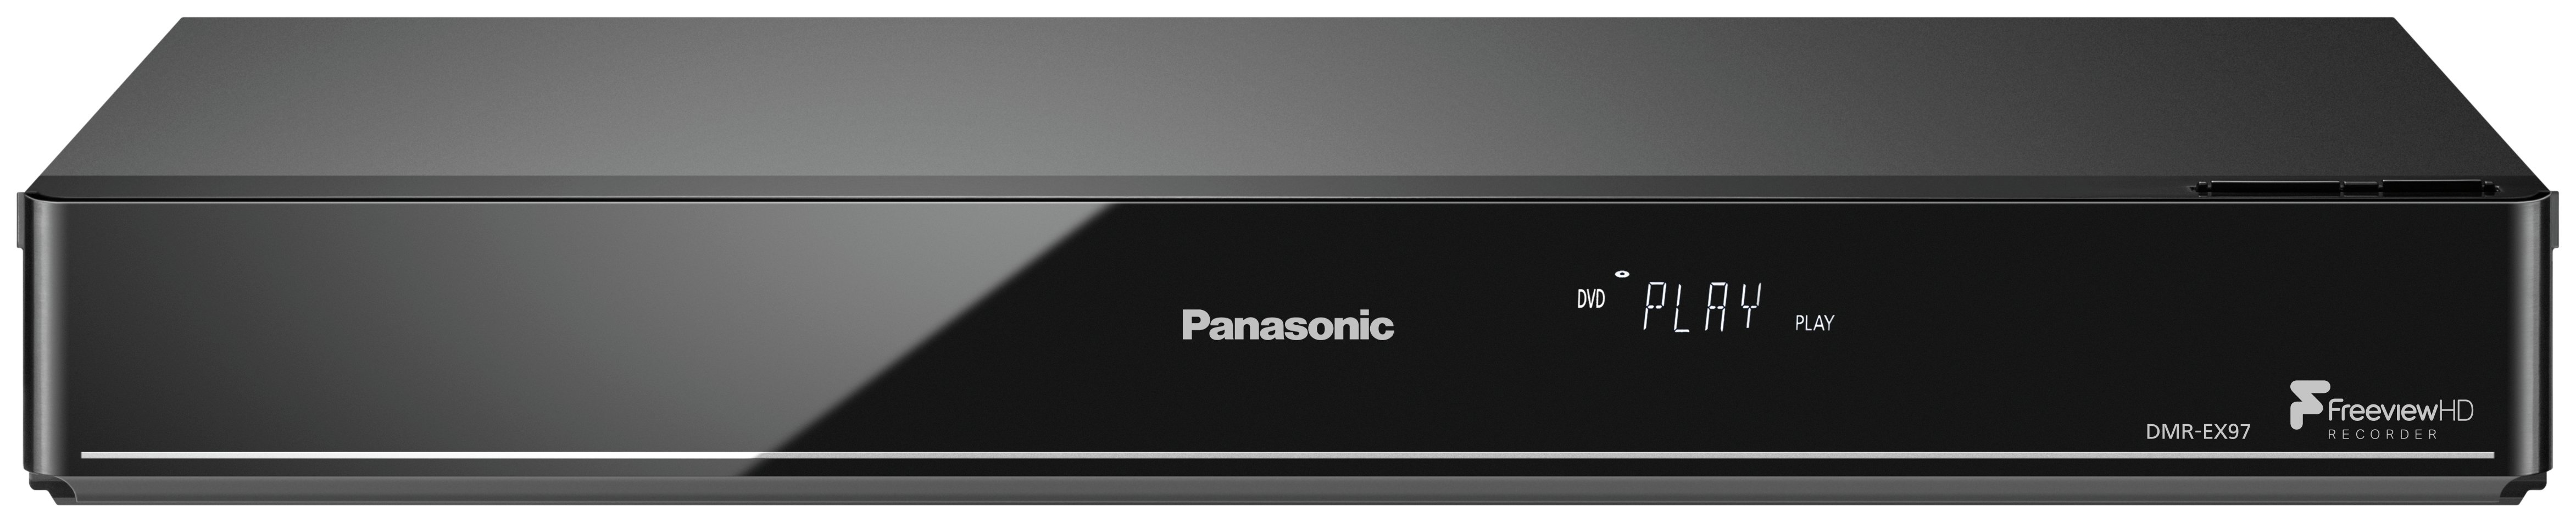 Image of Panasonic EX97EB-K 500GB PVR and DVD Recorder